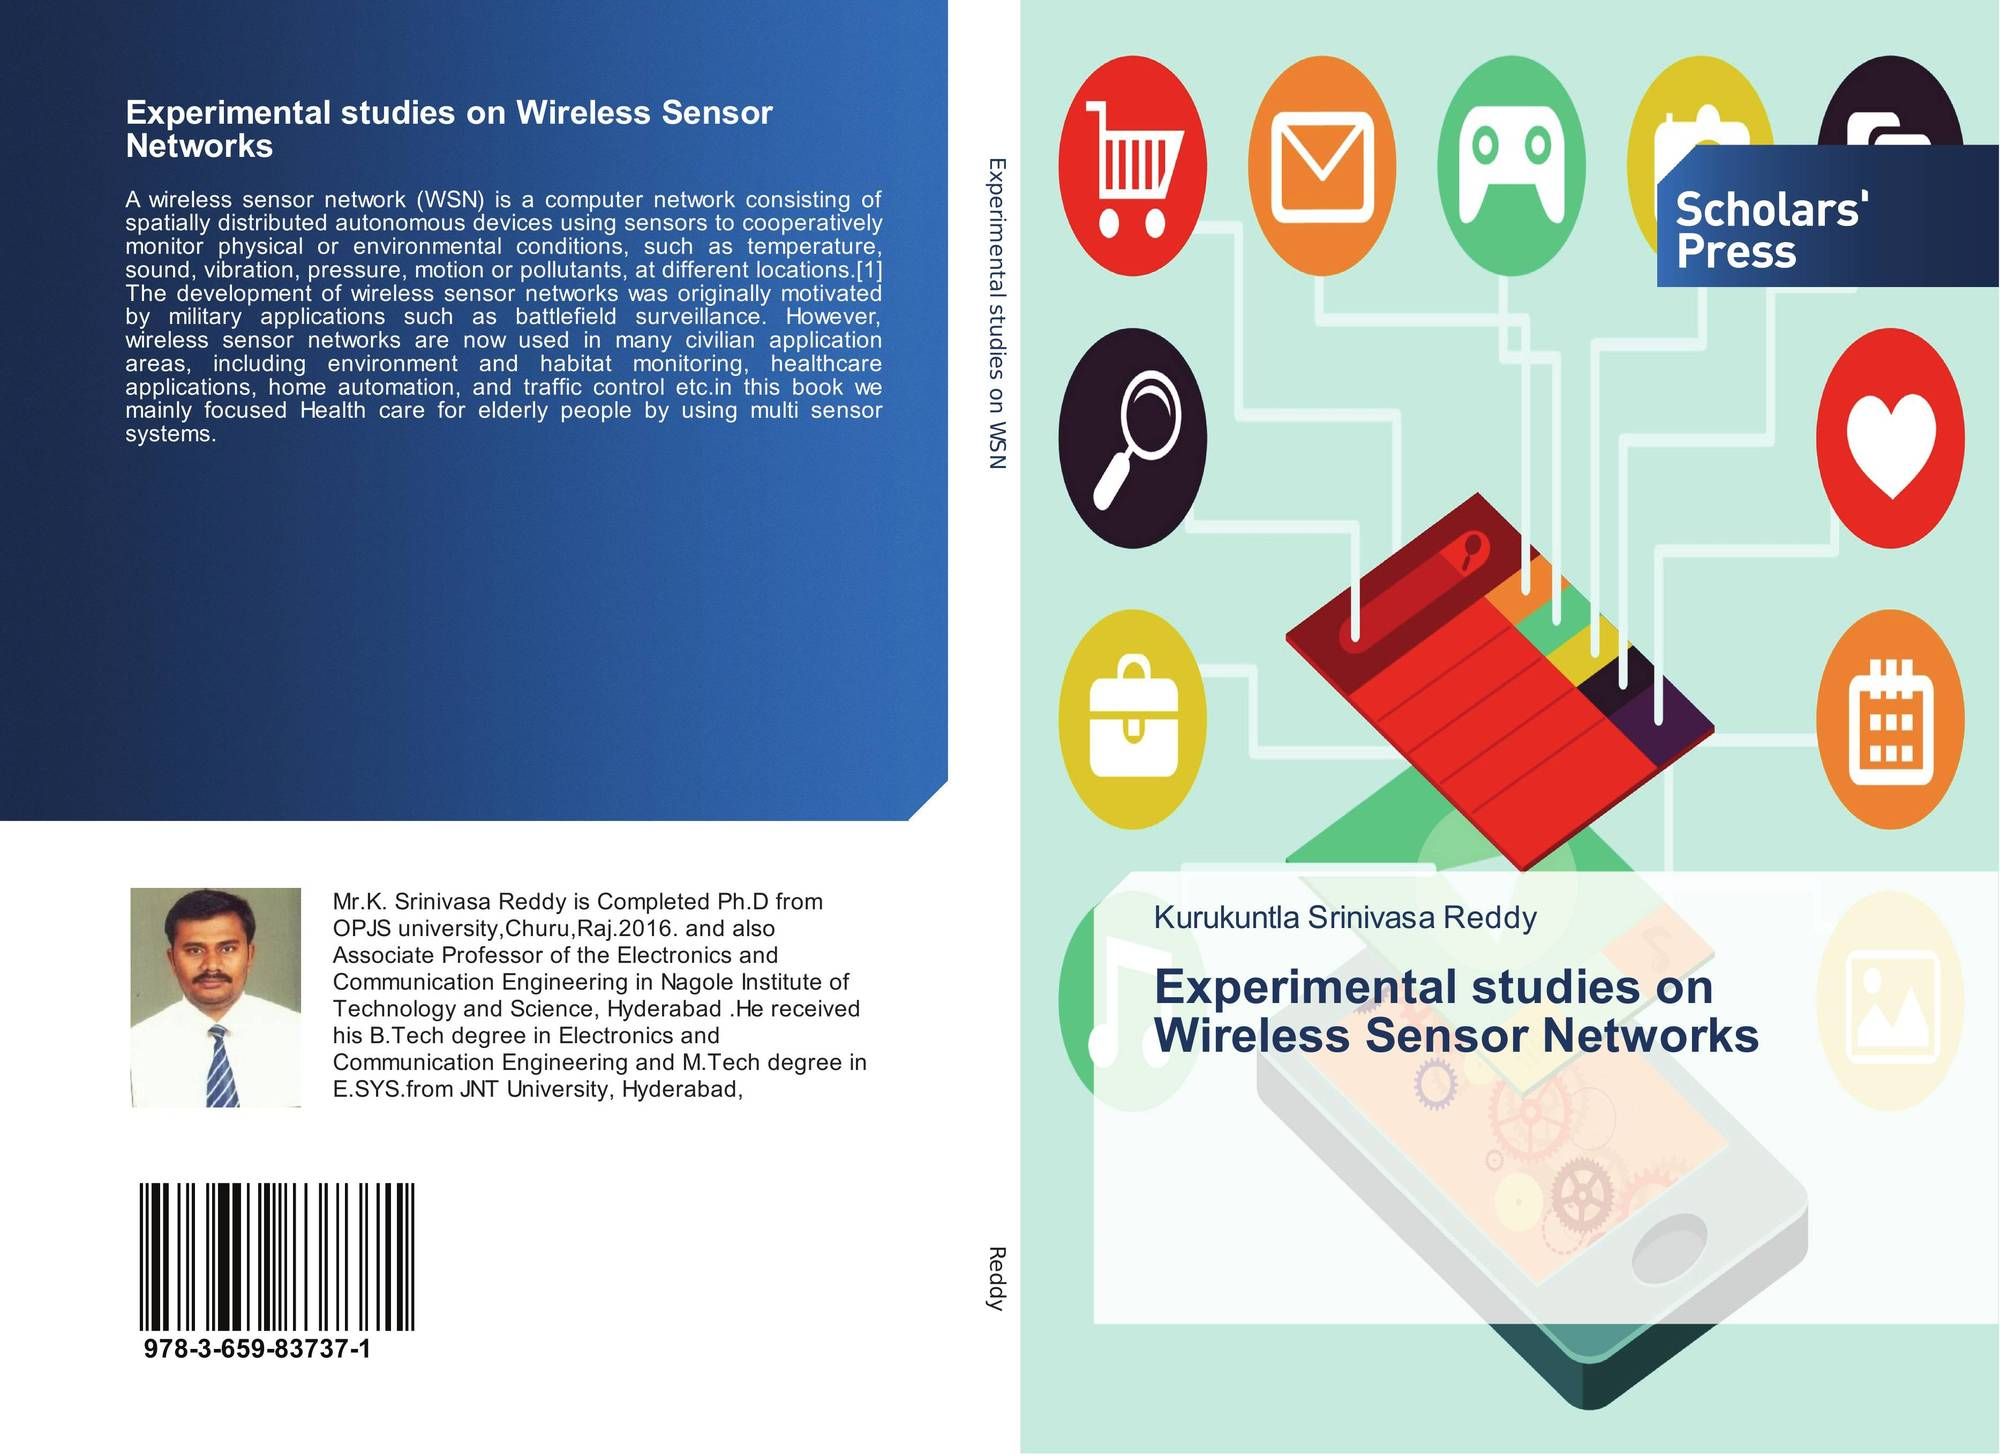 research on wireless sensor networks wsn Wireless sensor networks: a great opportunity for researchers in developing countries marco zennaro, bjorn pehrson royal institute of technology - kthse-100 44 stockholm development problems, but also to facilitate research activities in.